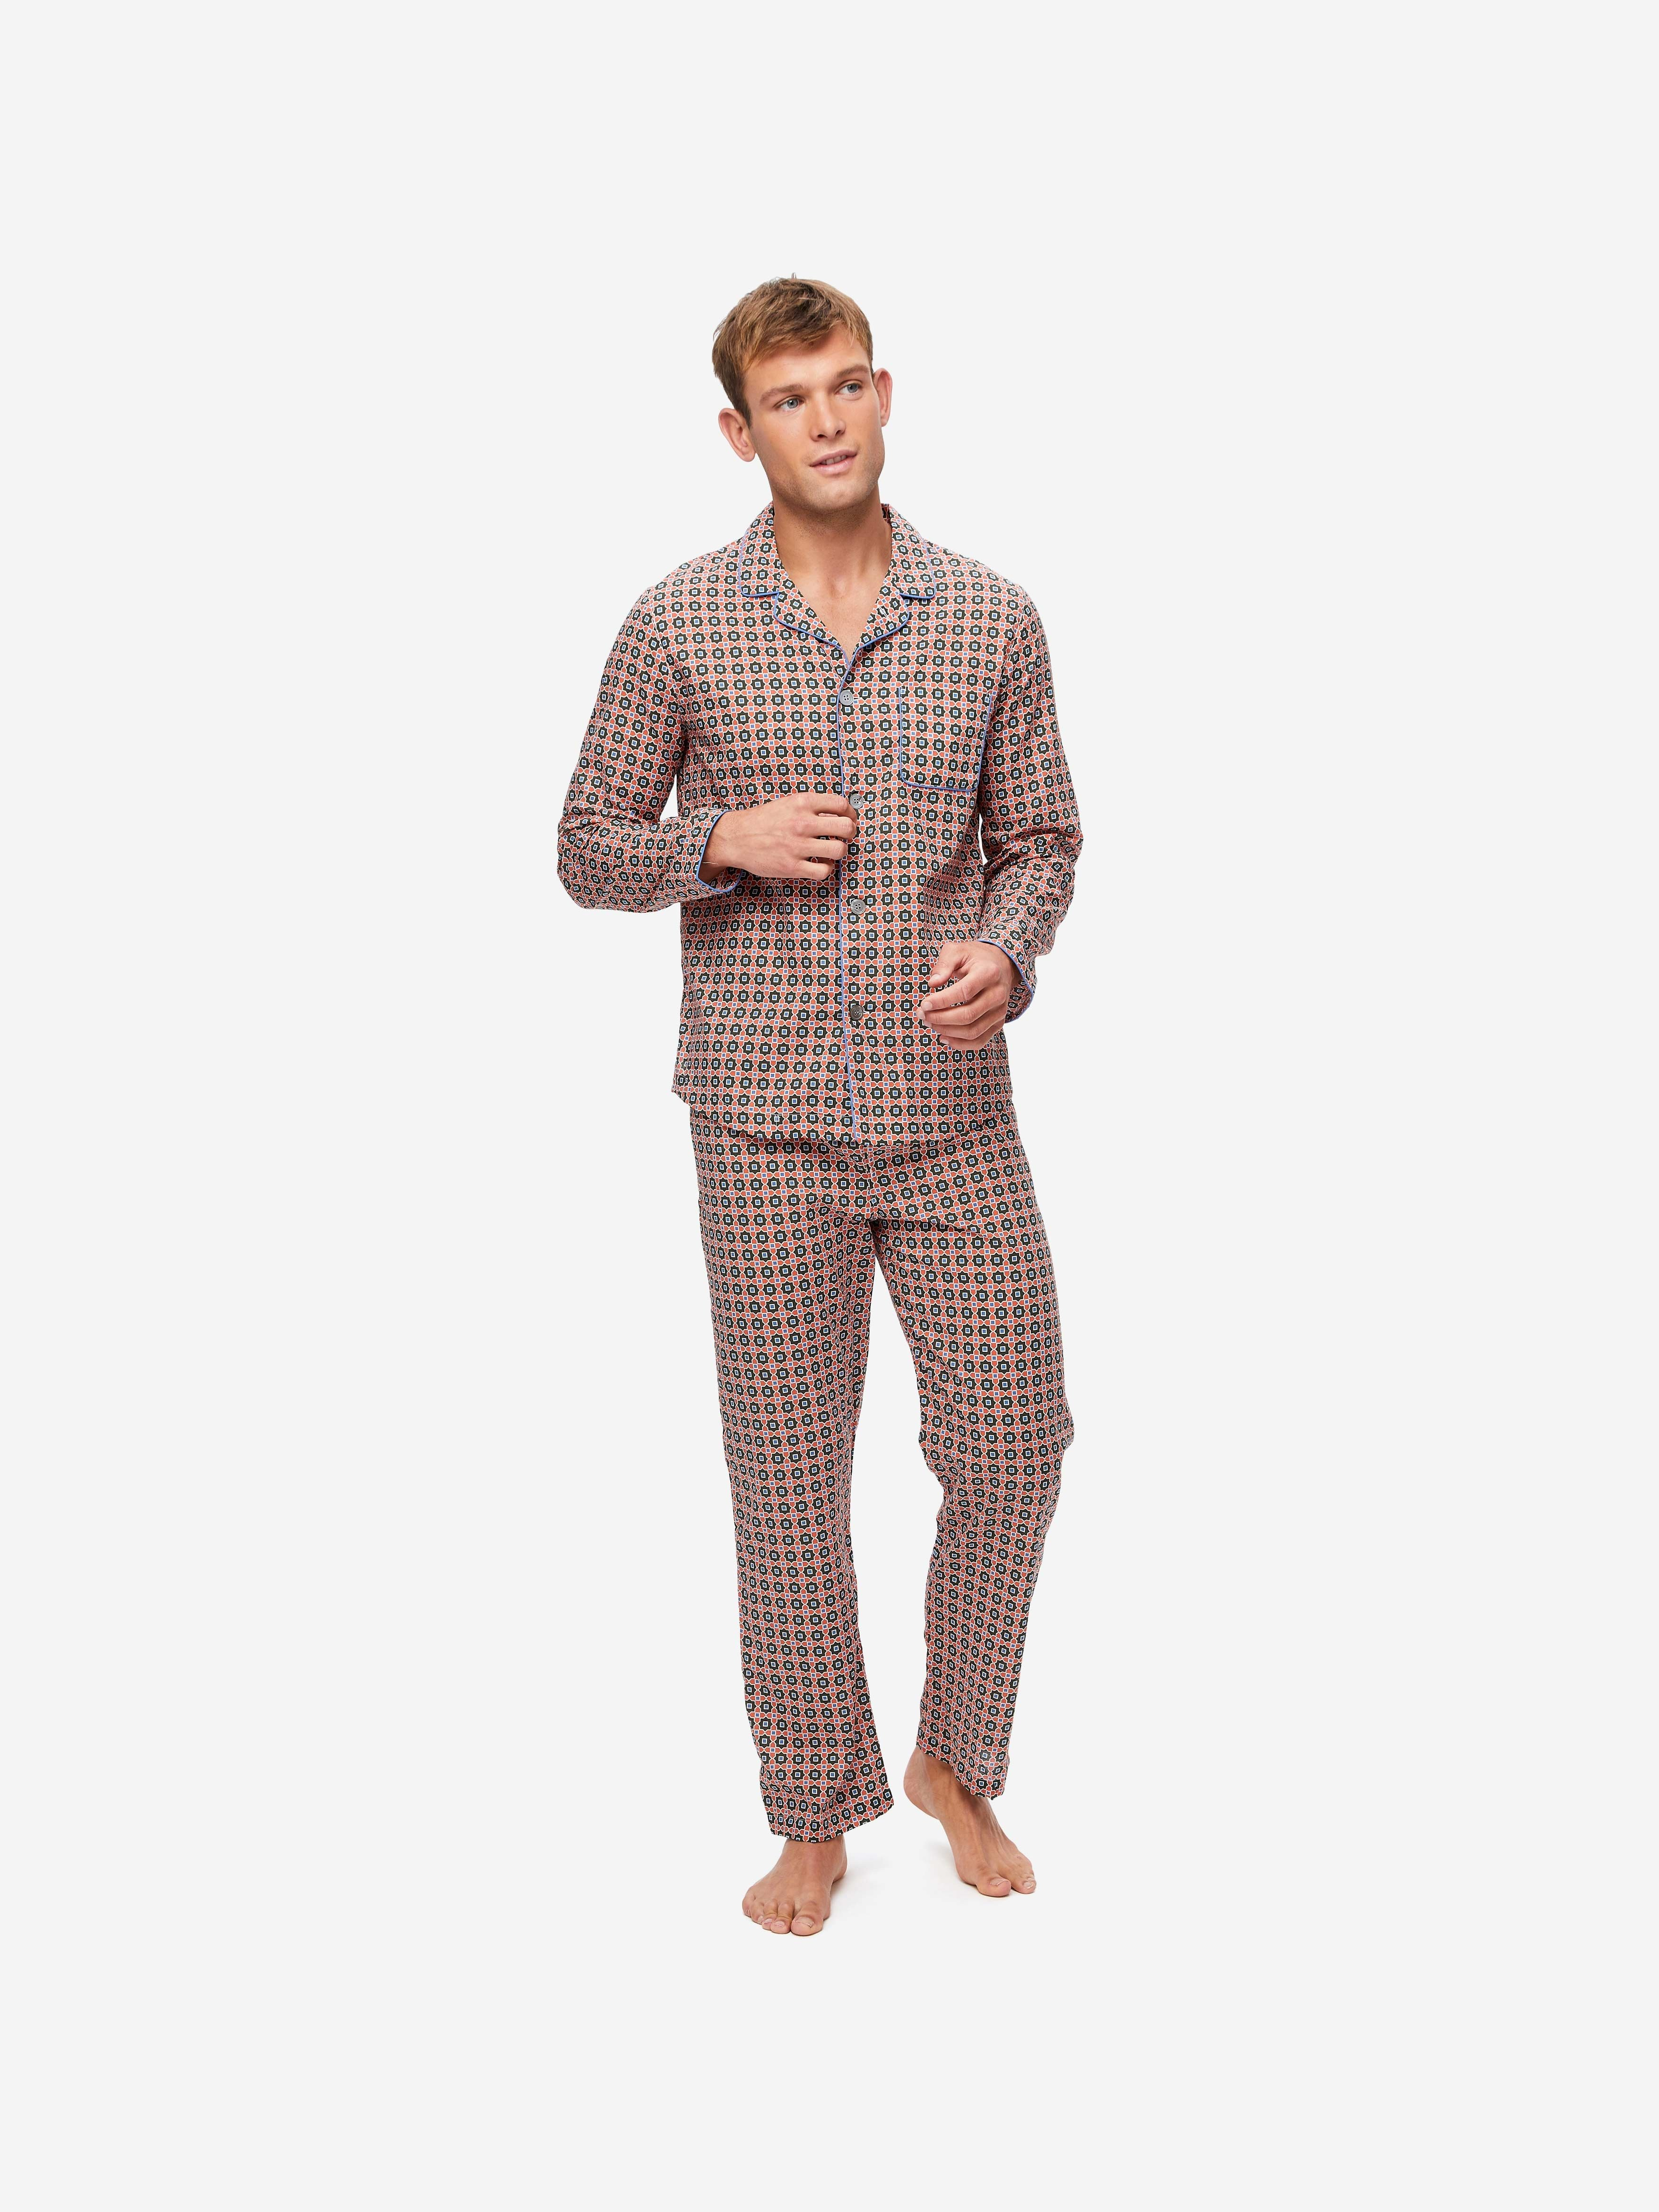 Men's Modern Fit Pyjamas Ledbury 34 Cotton Batiste Multi